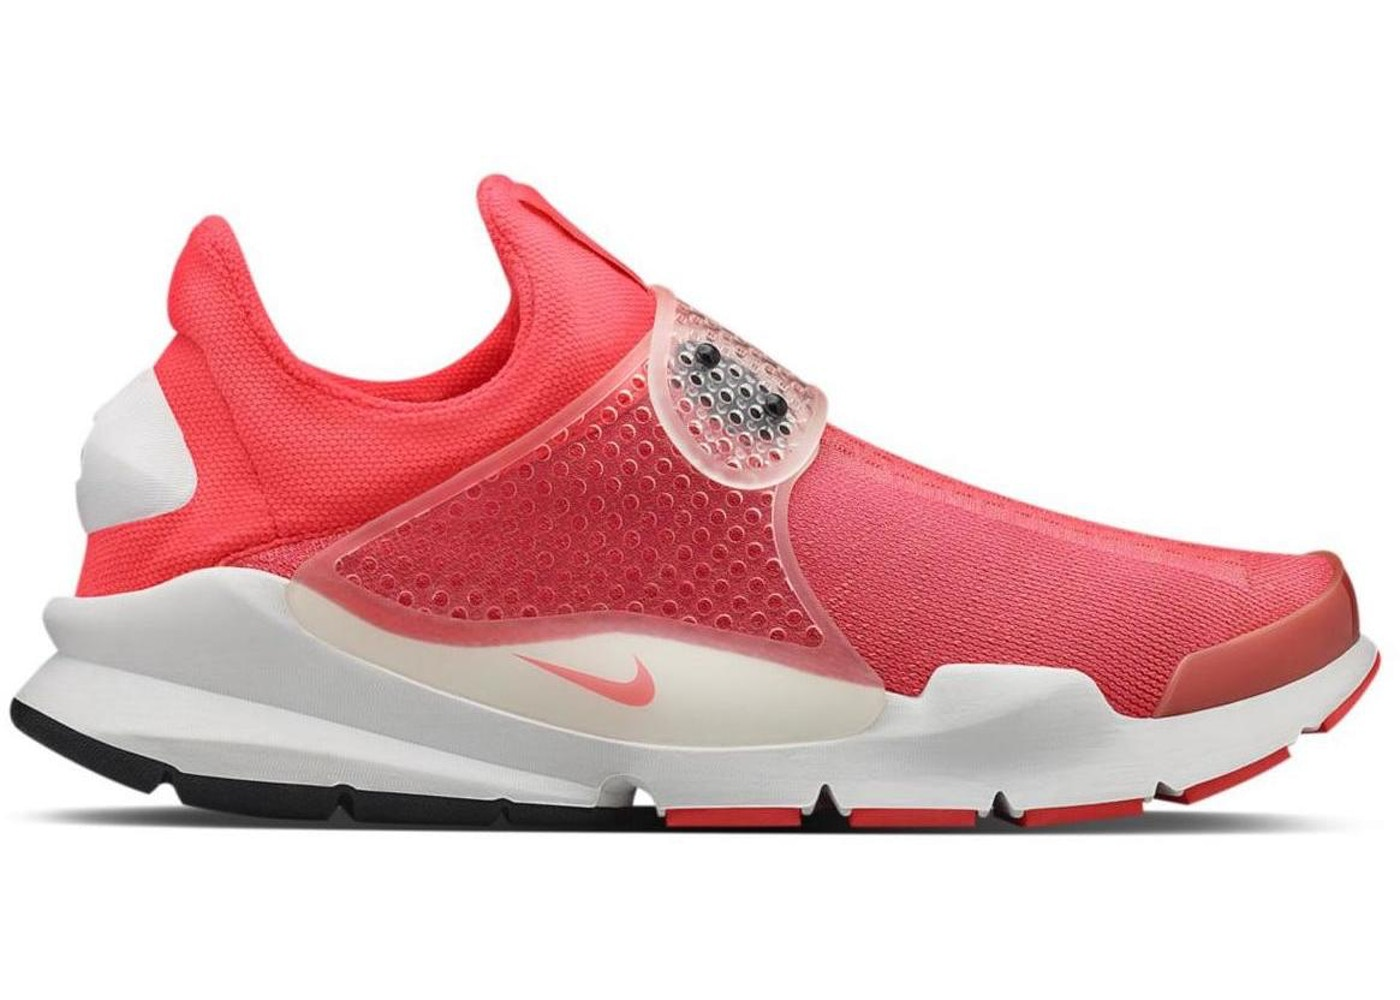 official photos 626ae a1fe5 Nike Sock Dart Infrared